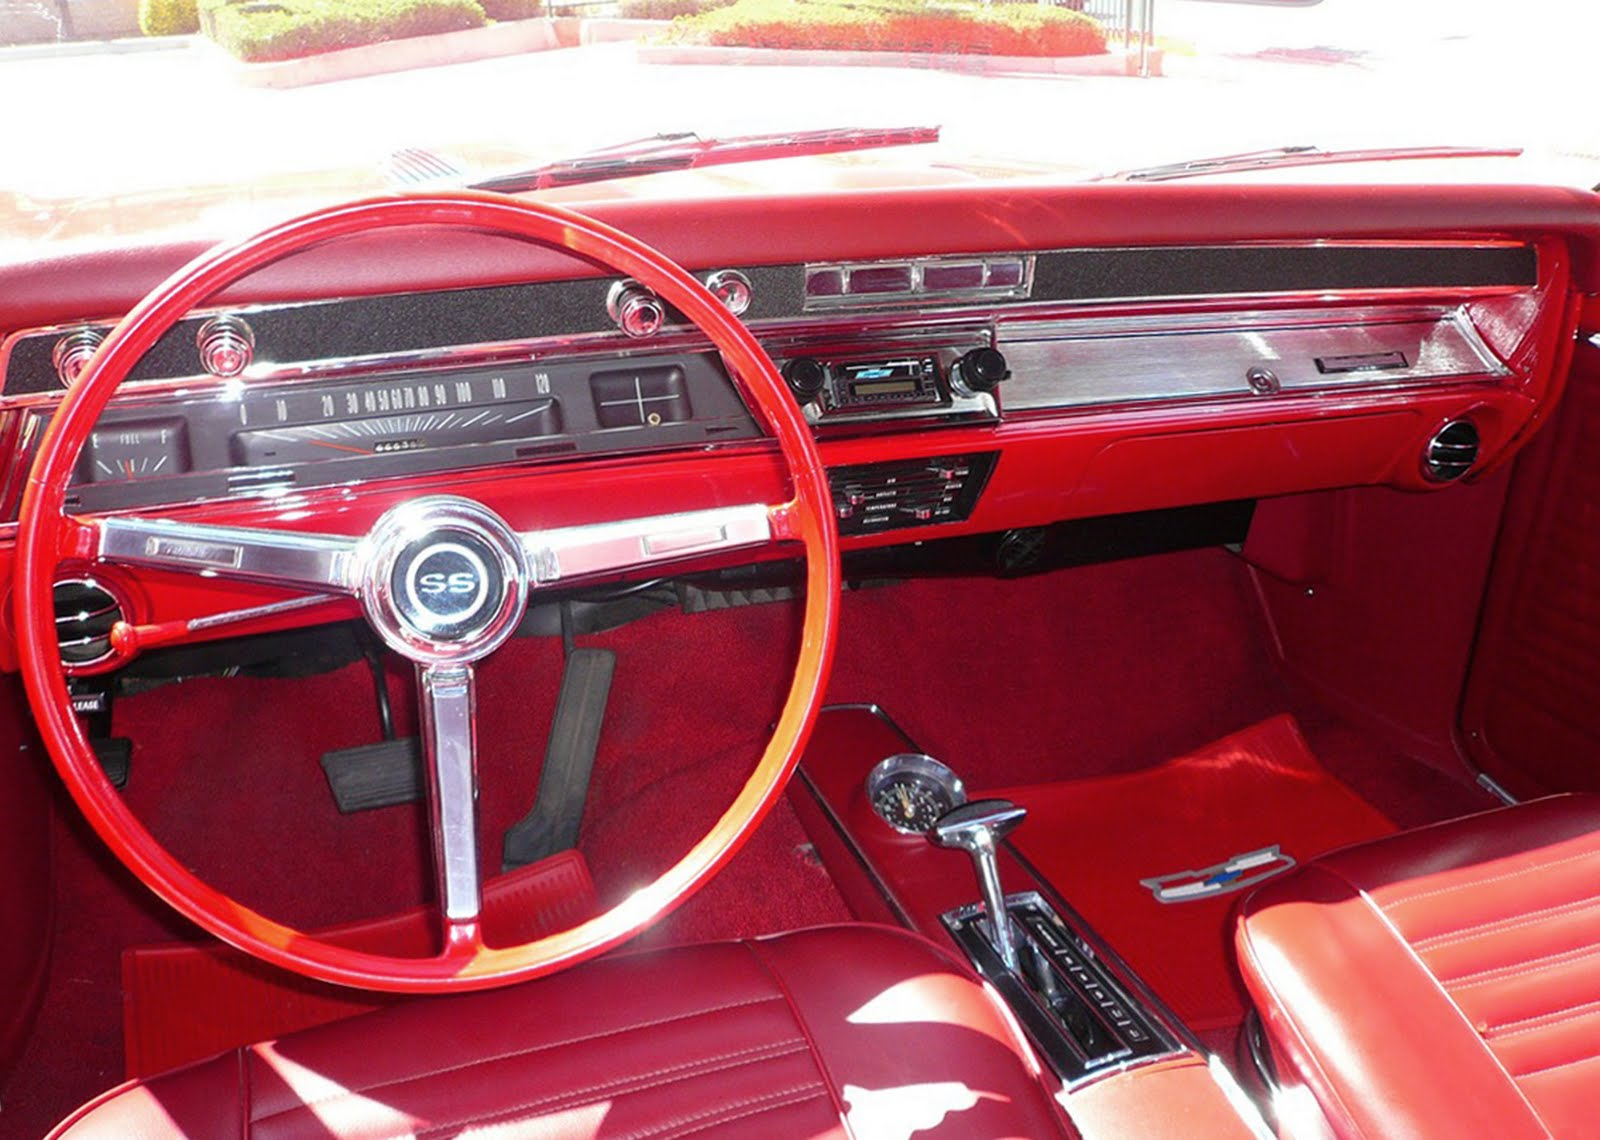 1956 cadillac interior related keywords amp suggestions - 20111123